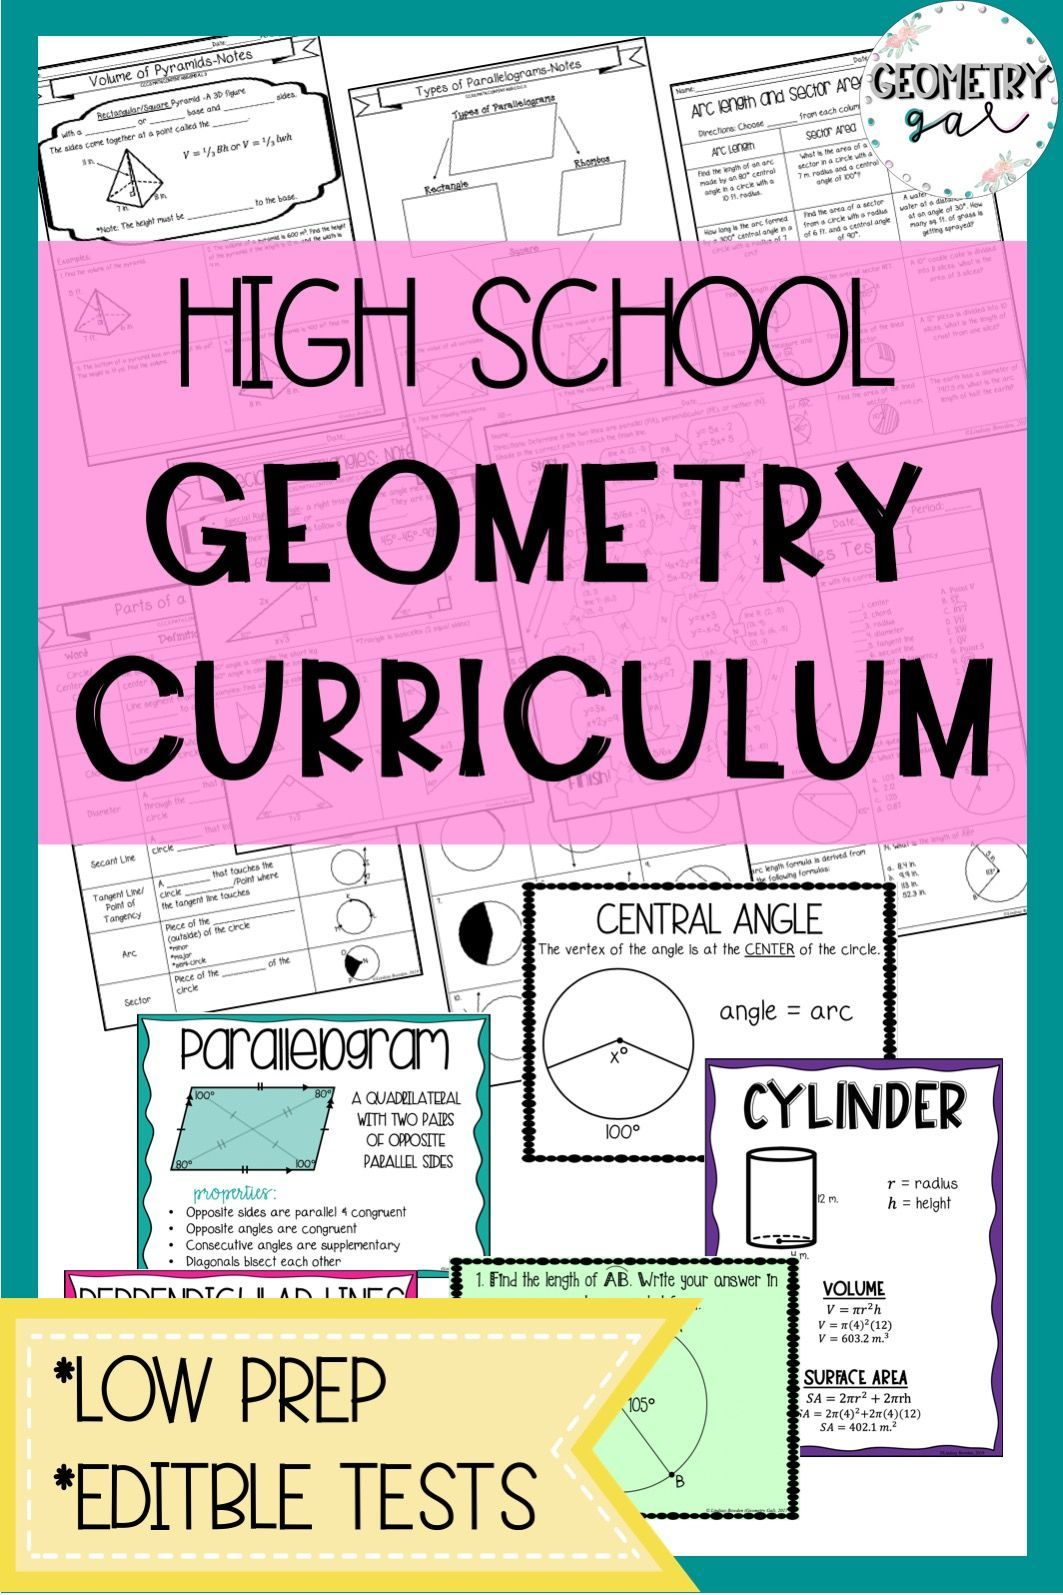 Geometry Curriculum With Images